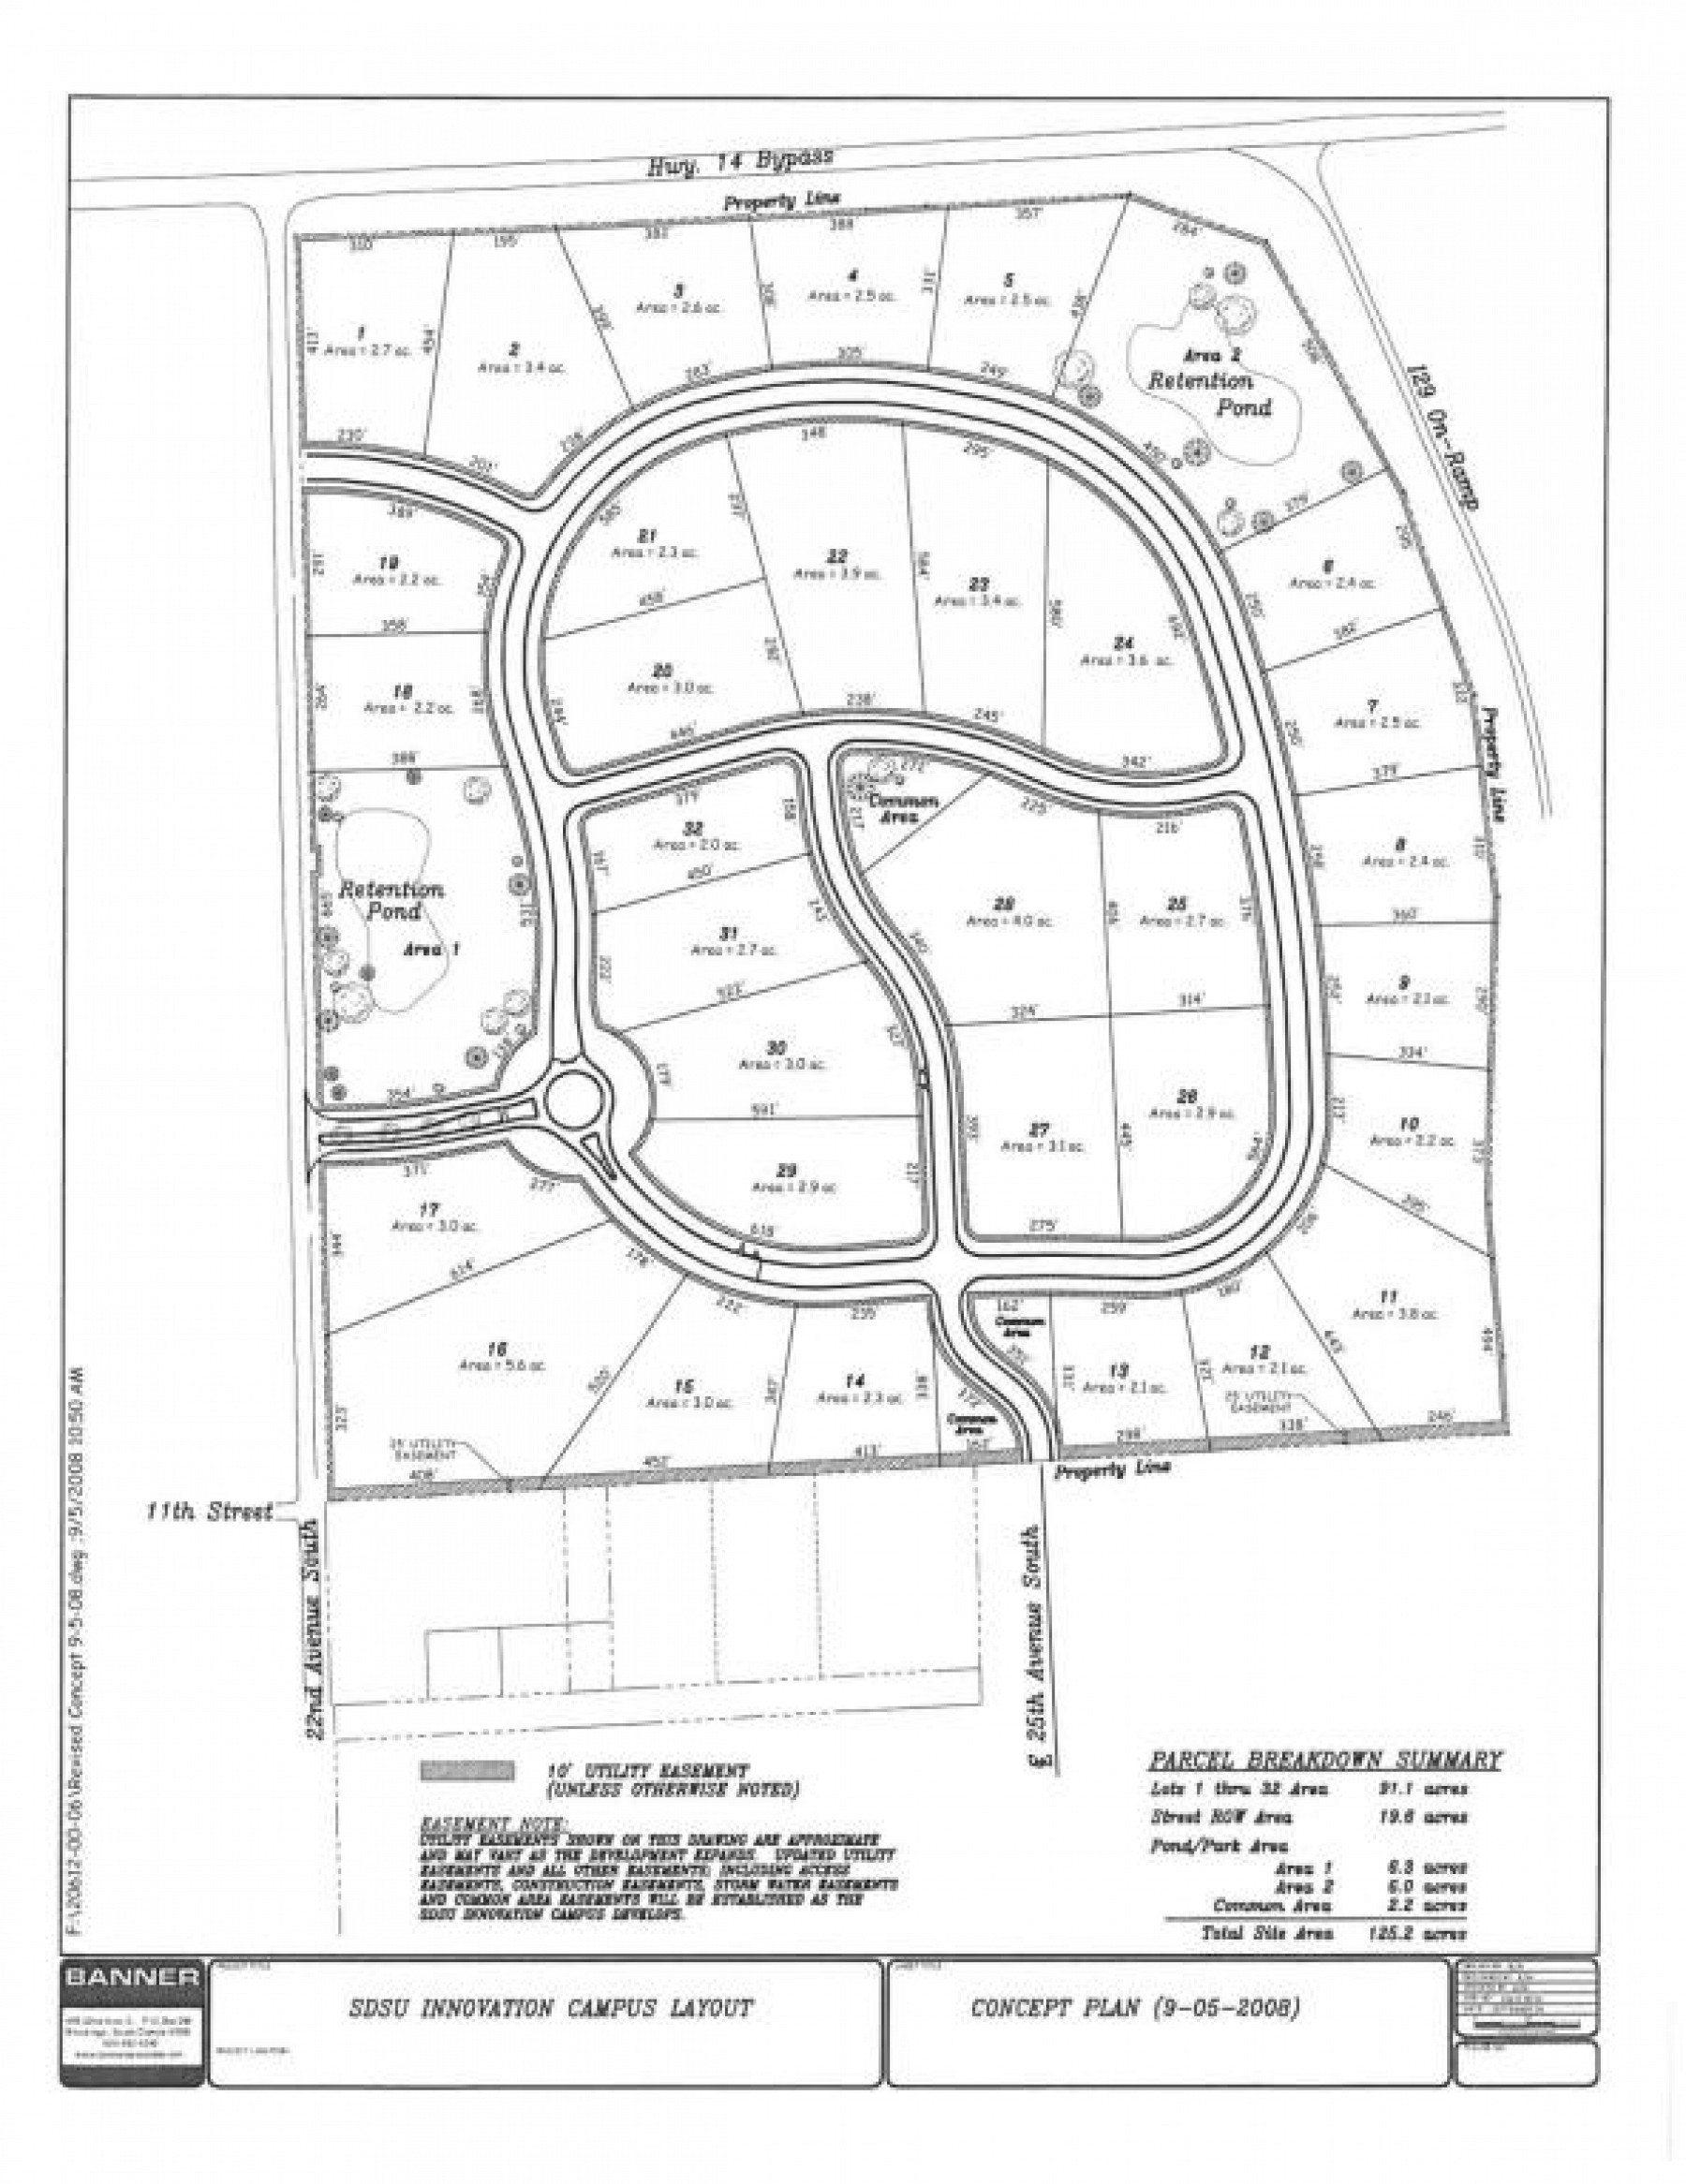 Lot 19 Innovation Campus, Brookings, SD 57006